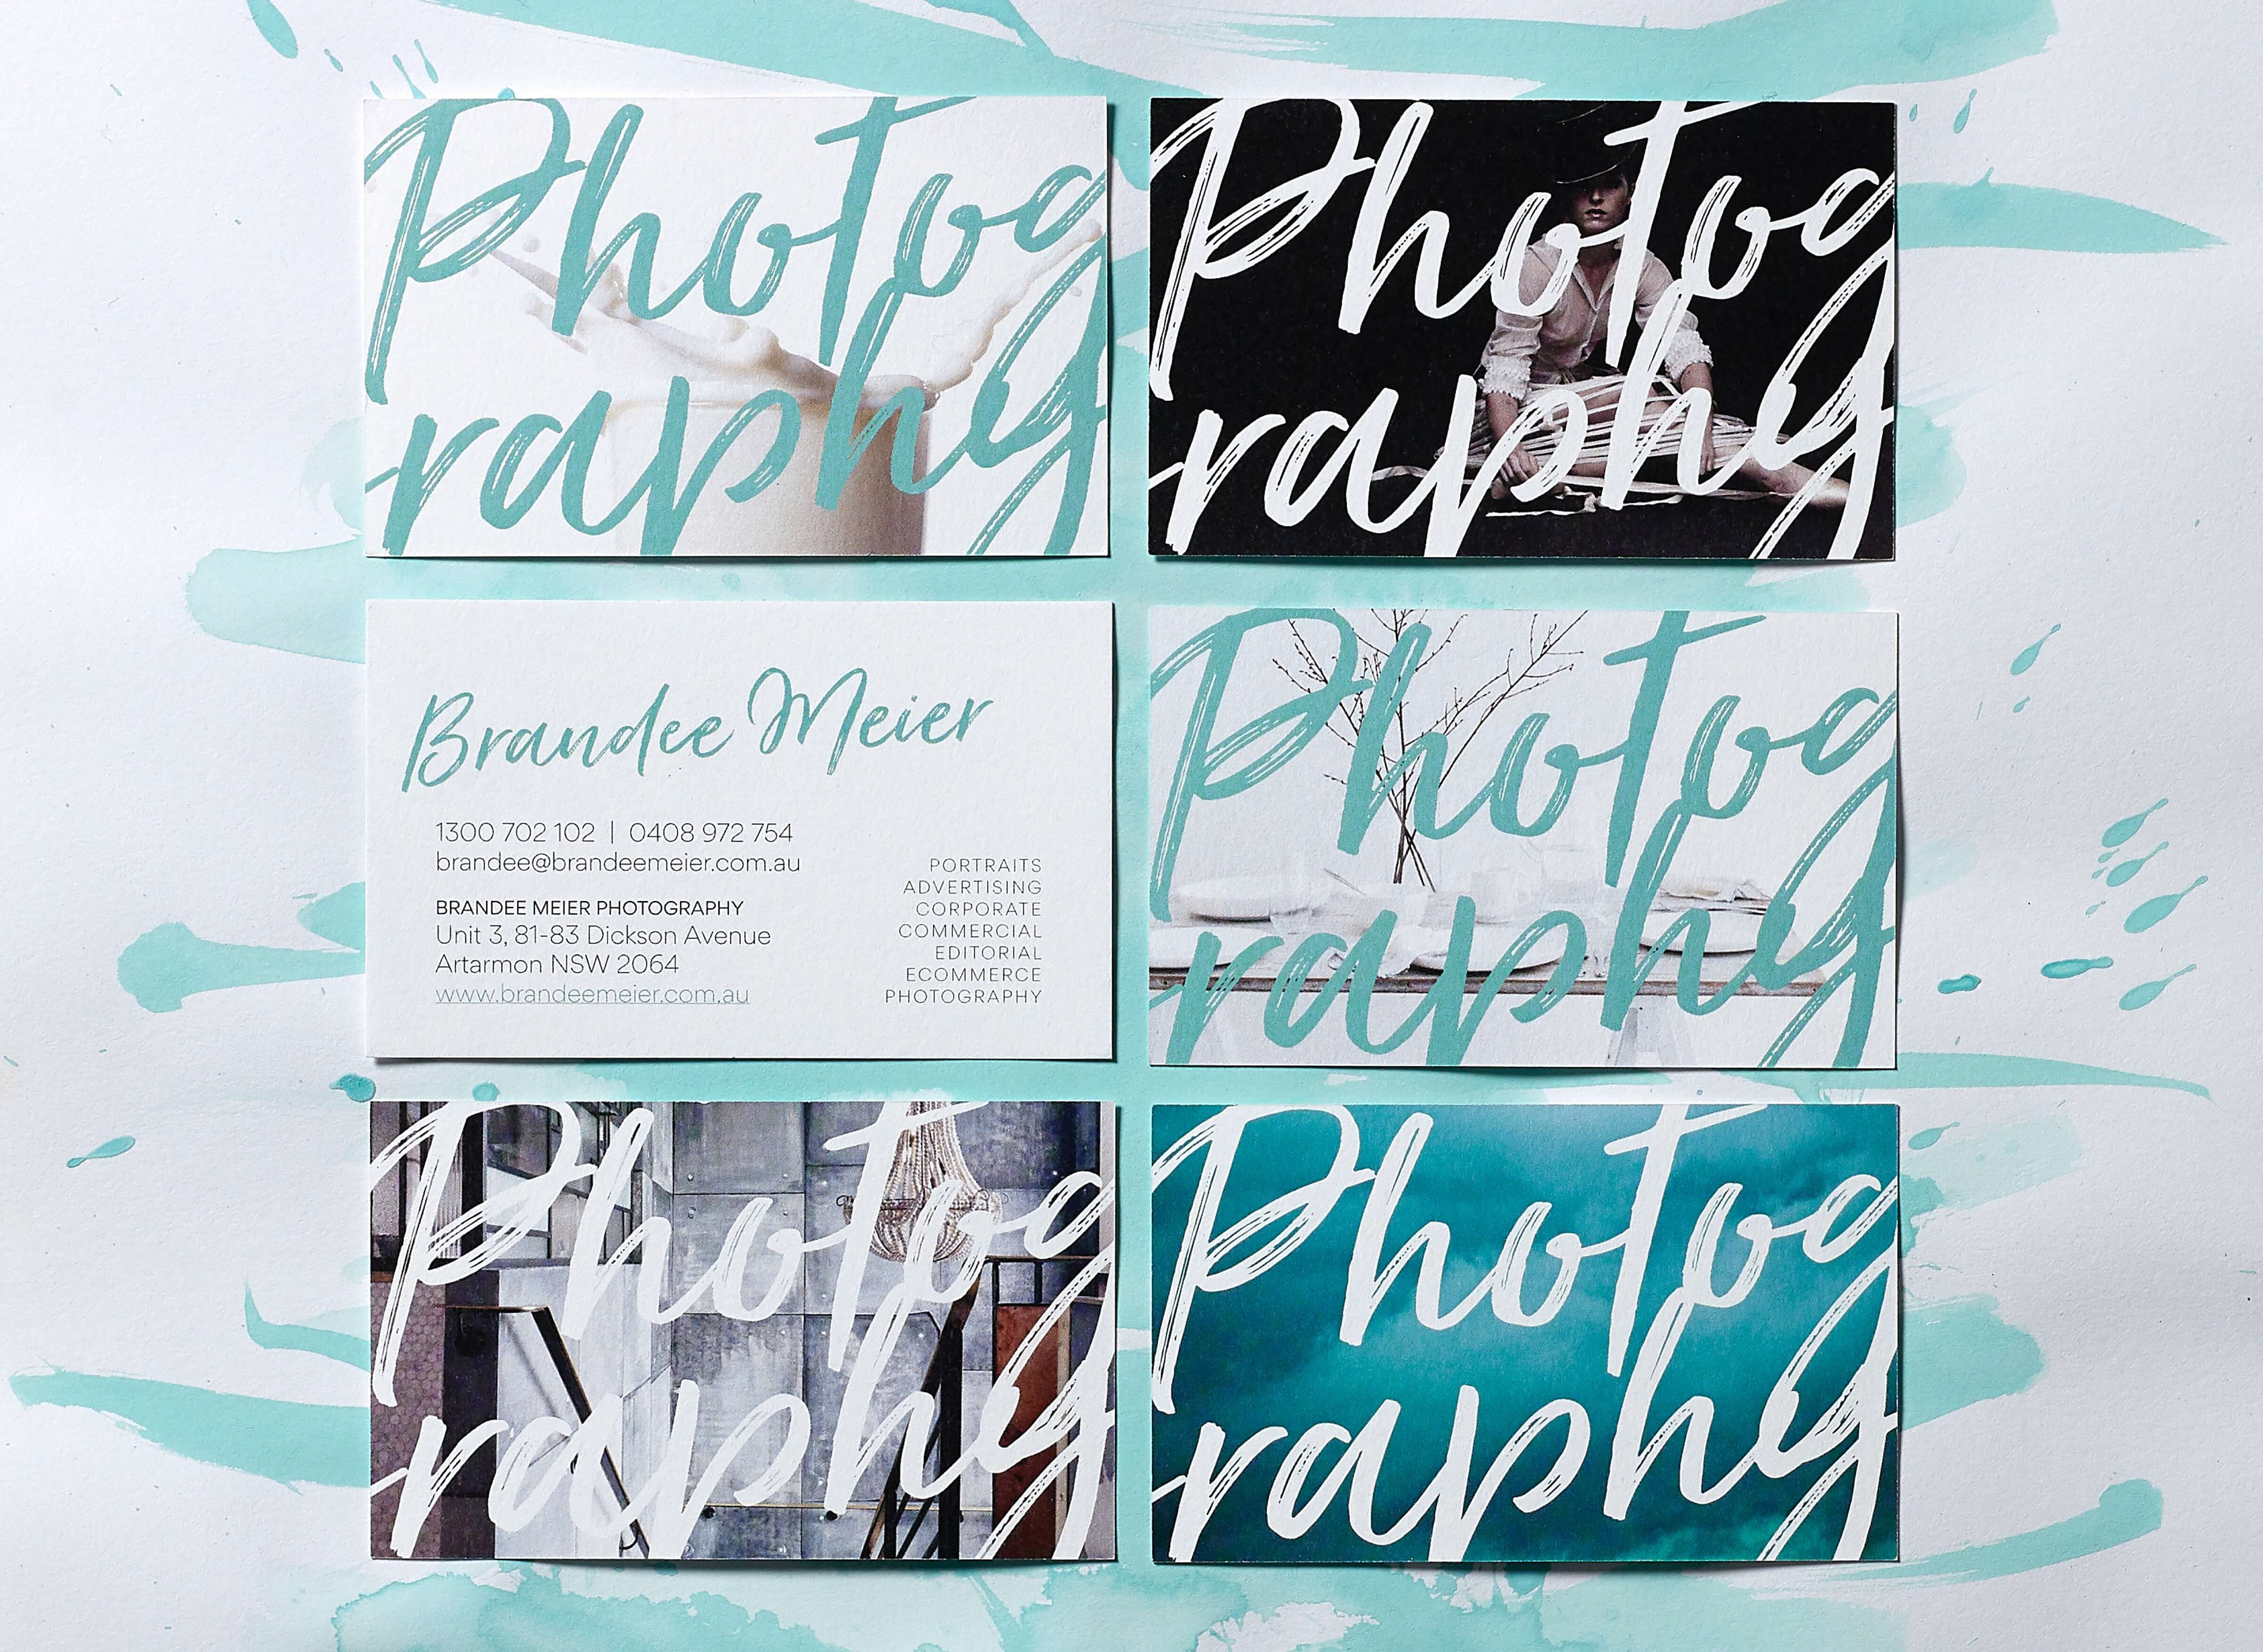 Georgette hall brandee meier photography photography on the back of her business cards a custom stamp enabled her to brand a variety of stationery quickly and easily and created a personal reheart Gallery